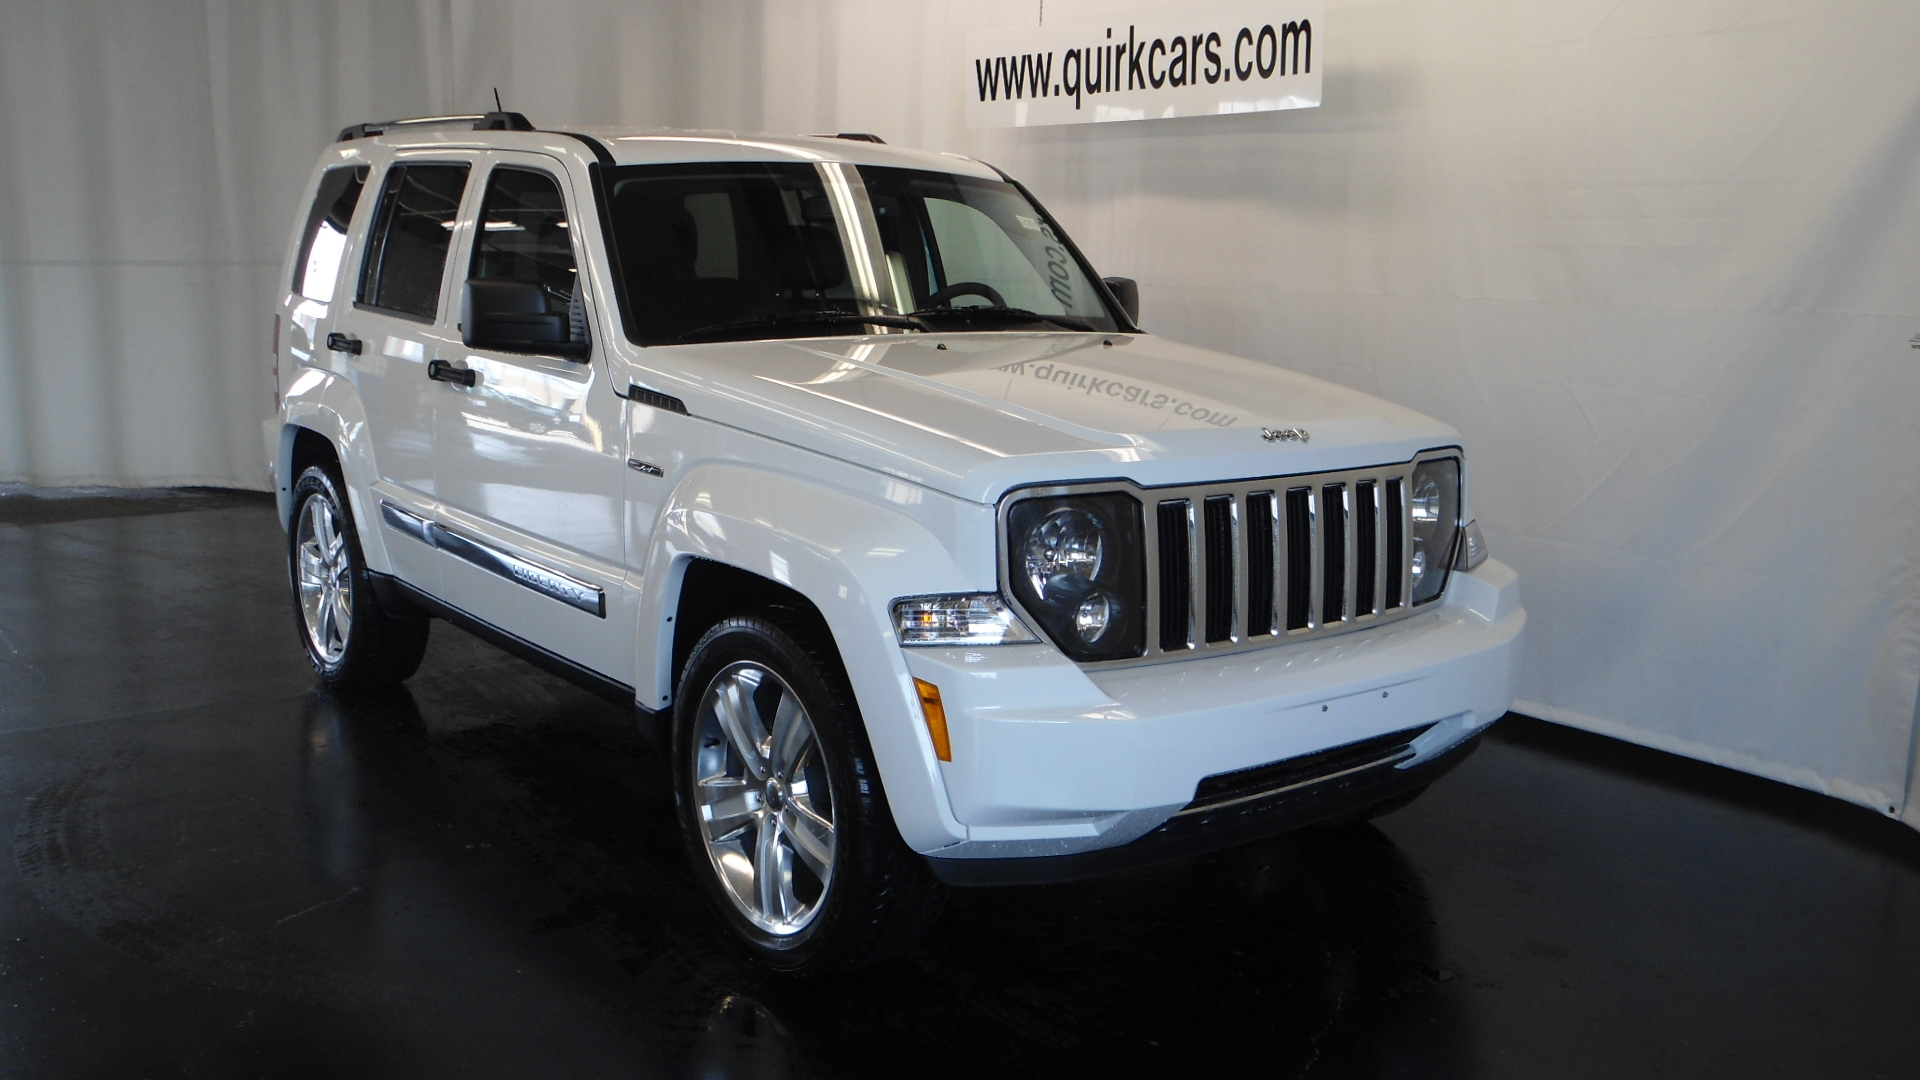 Jeep Liberty Ii 2012 Pictures #14